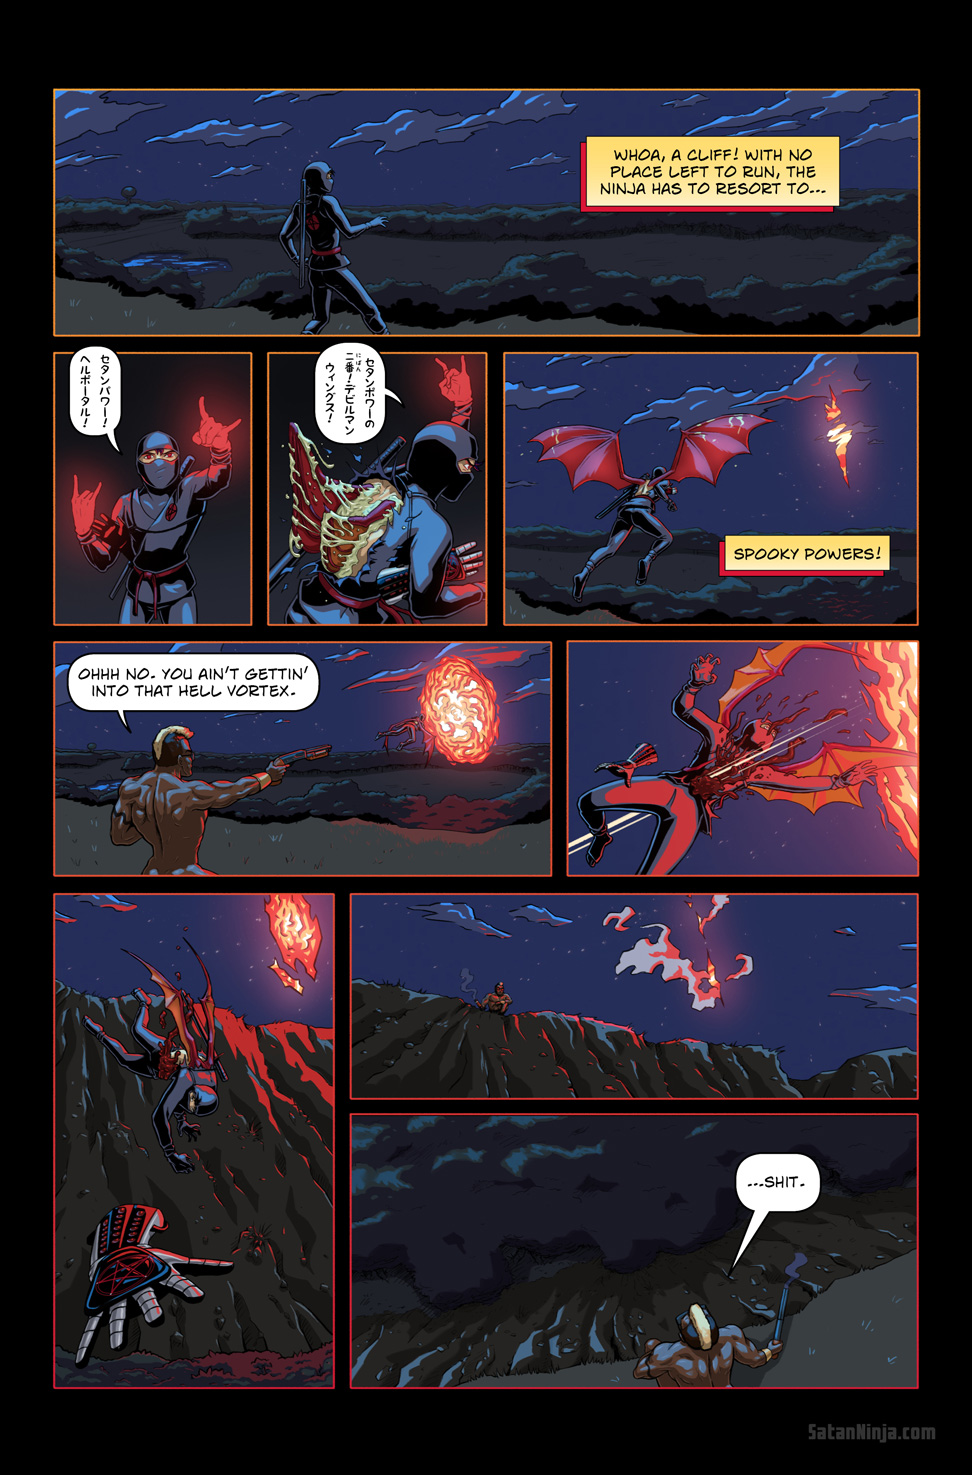 Issue 1, Page 20 - Spooky Powers